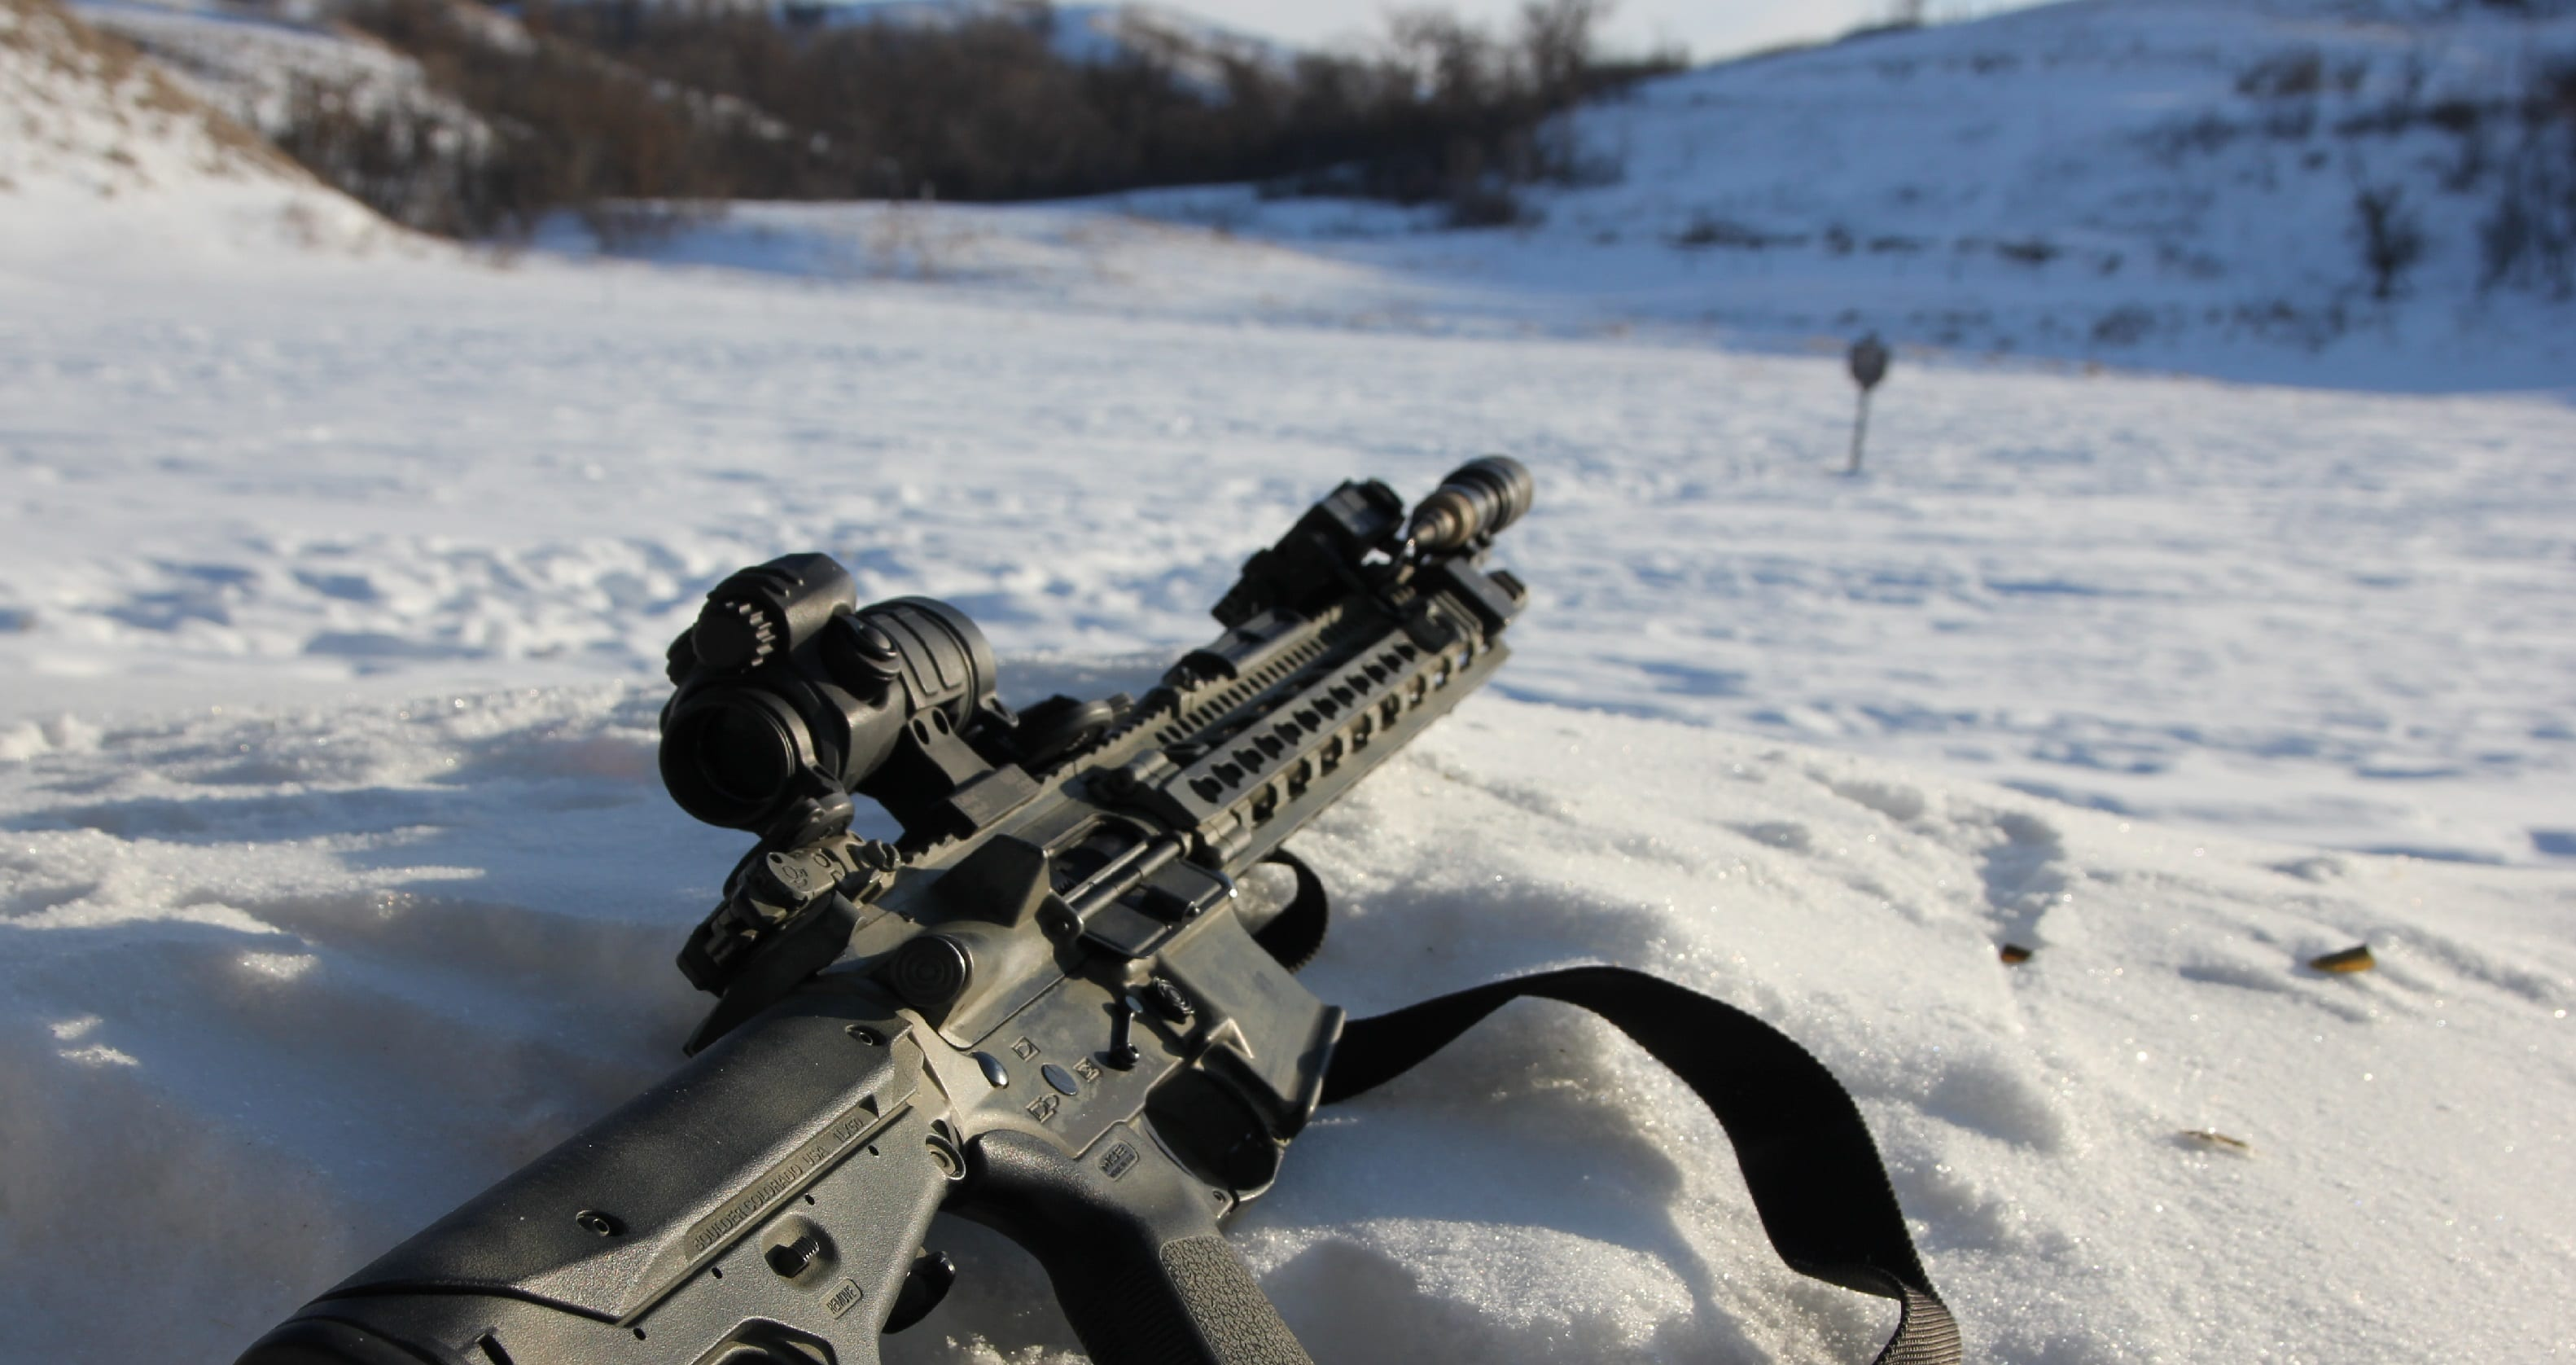 Aimpoint PRO in snow on daniel defense m4v11